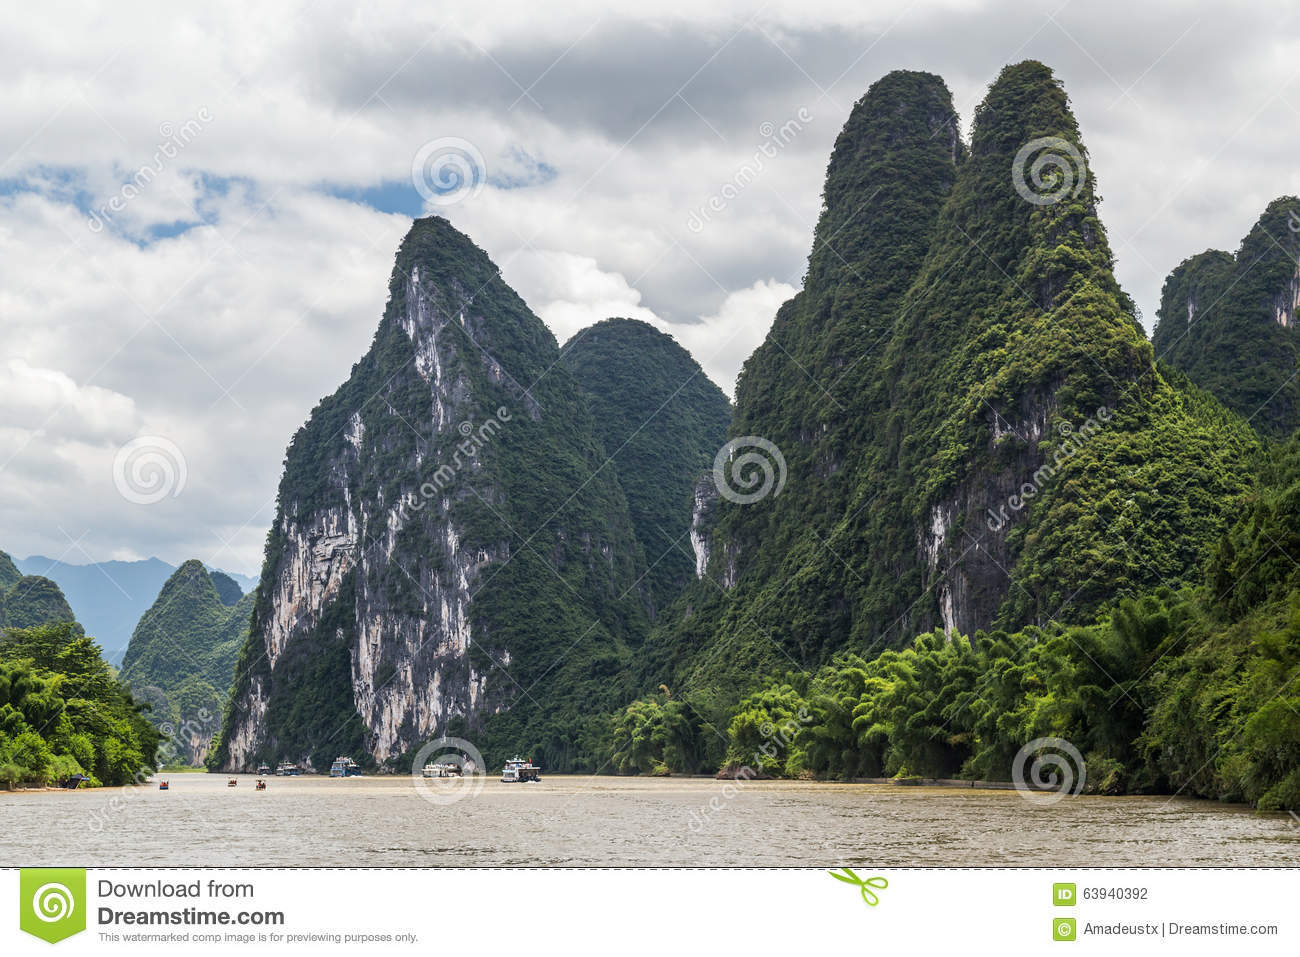 Karst Mountains And Limestone Peaks Of Li River In China Stock.